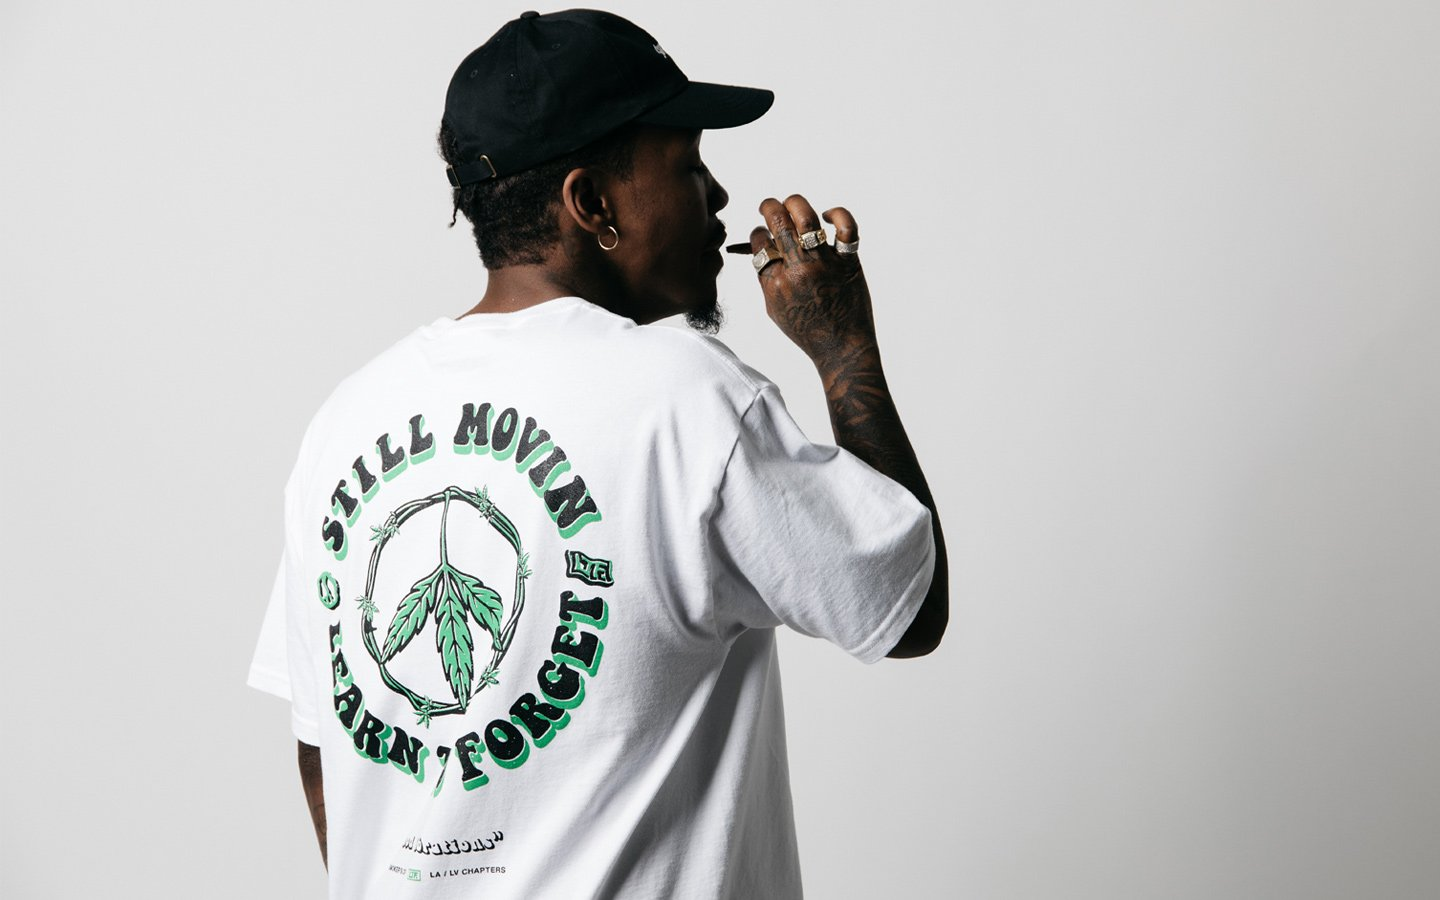 ltf learn to forget collab t-shirt with las vegas streetwear shop still movin on thedrop